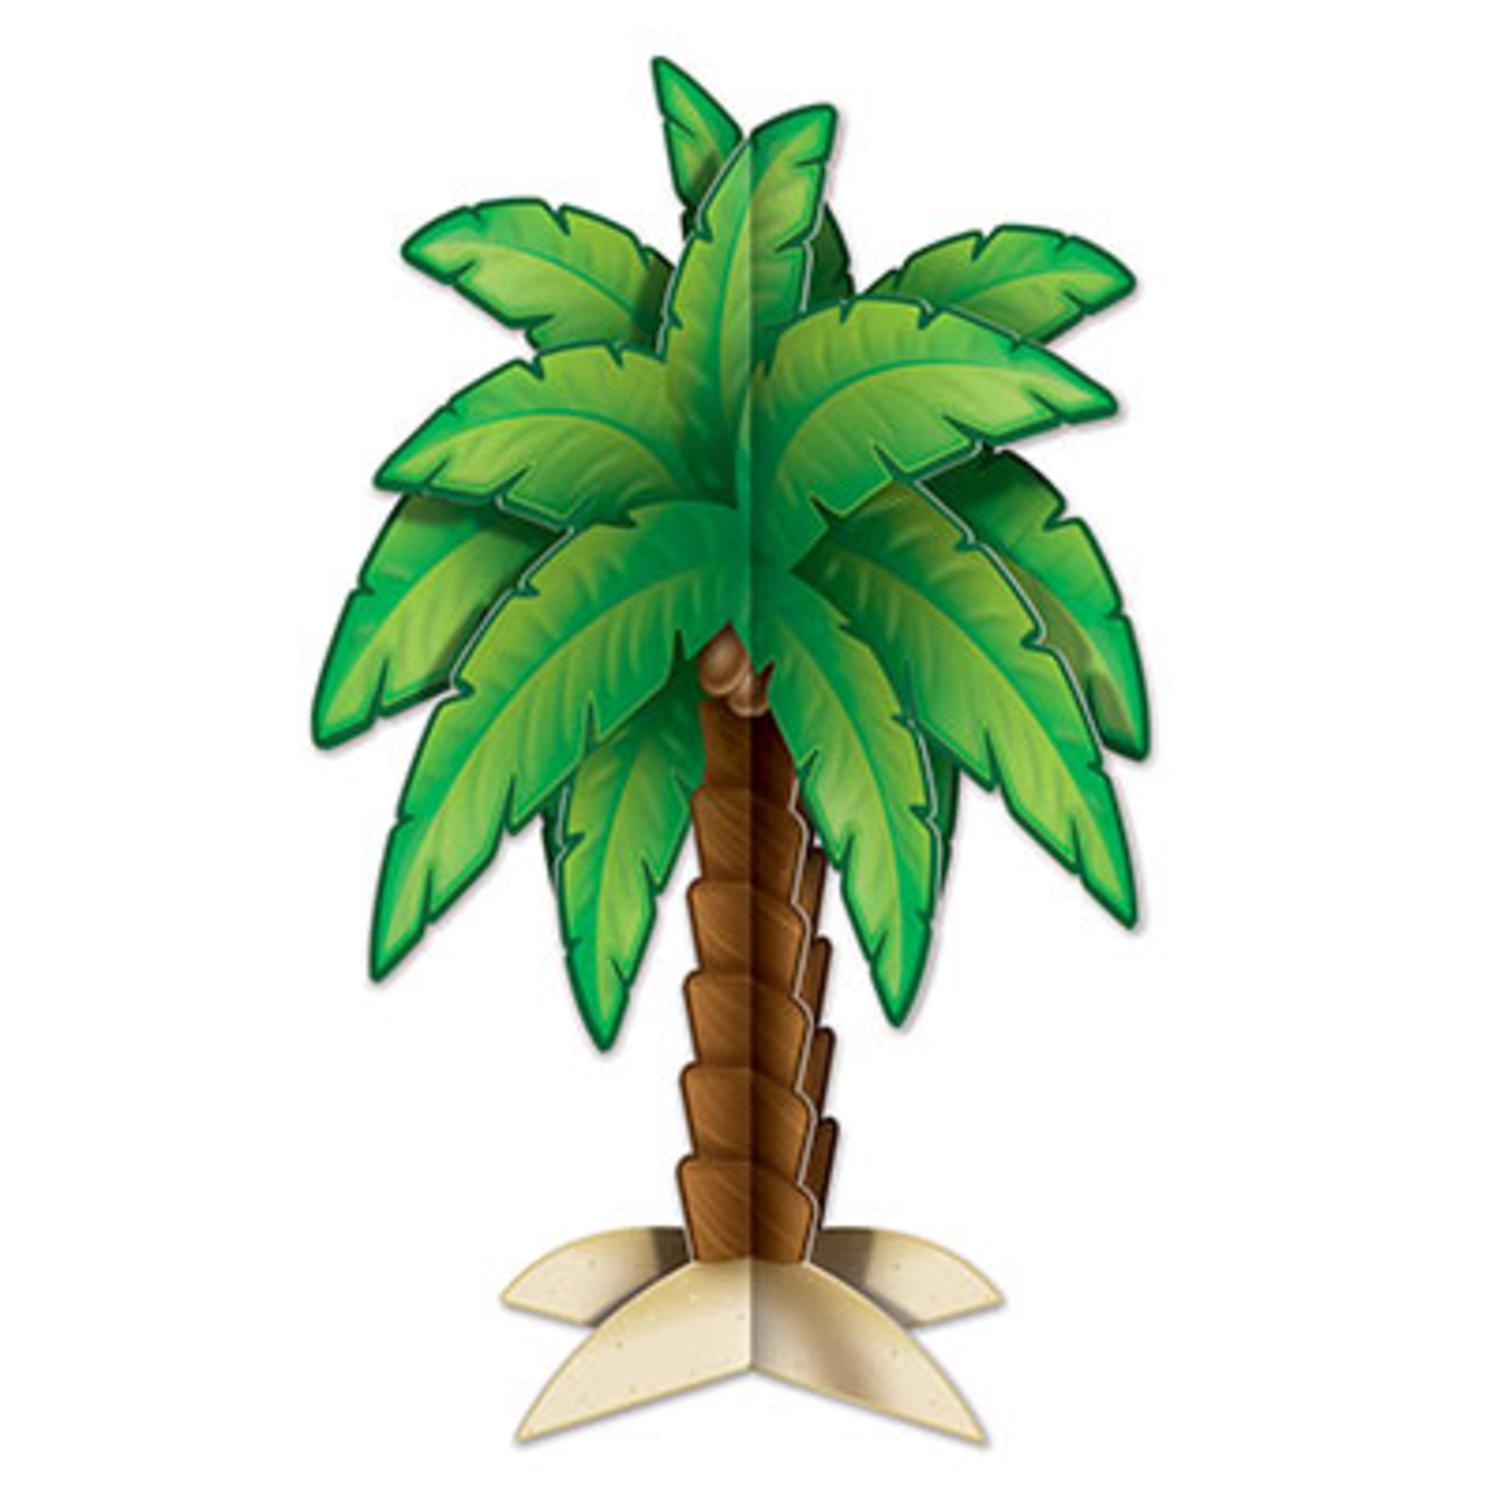 Club Pack of 12 Tropical 3-D Palm Tree Centerpiece Luau Party Decorations 11.75""